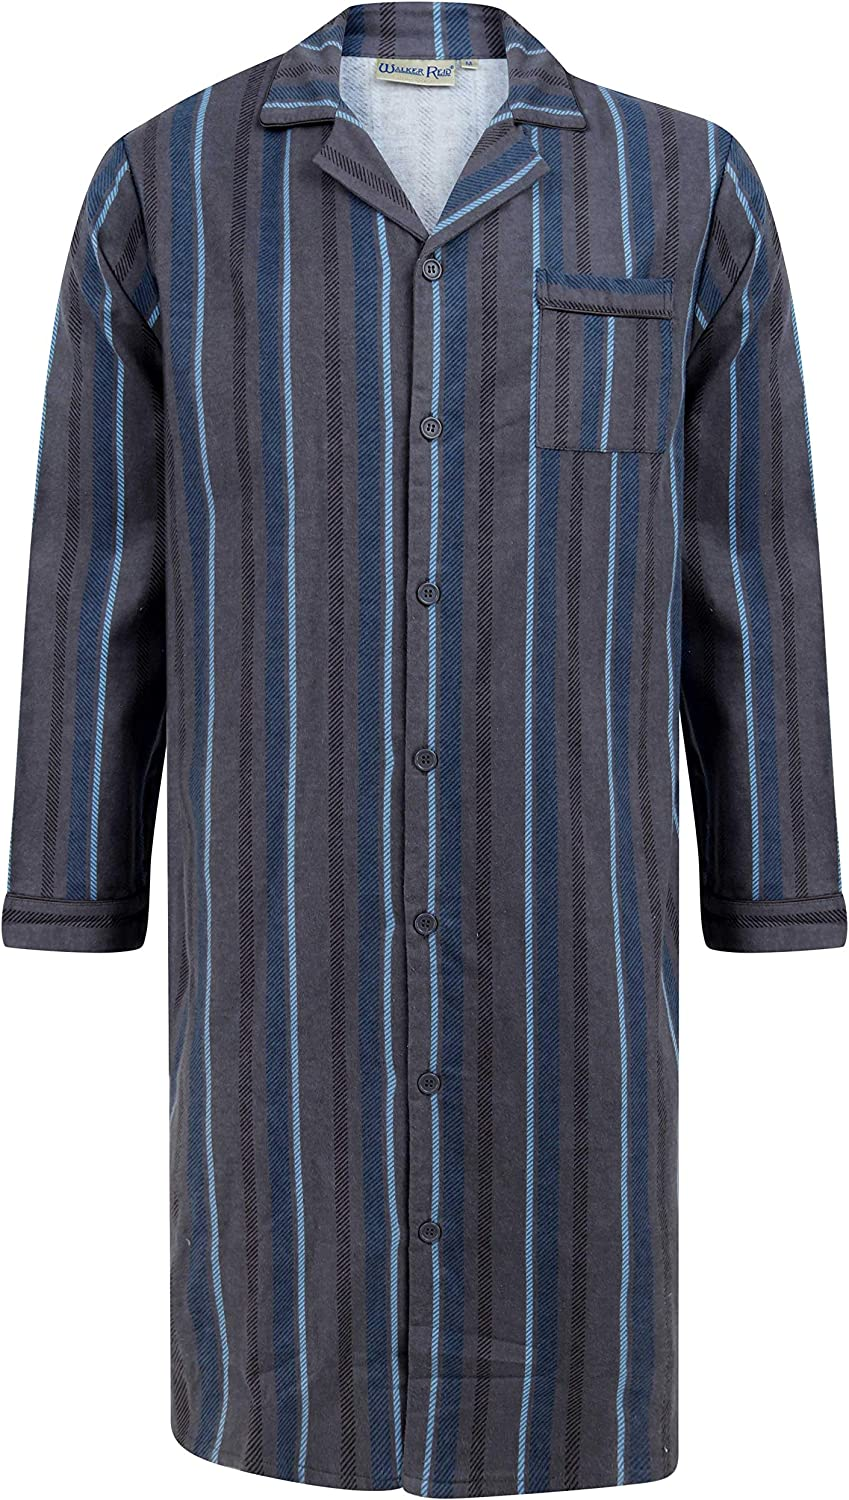 Walker Reid Mens Cotton Full Length Button Up Traditional Striped Nightshirt